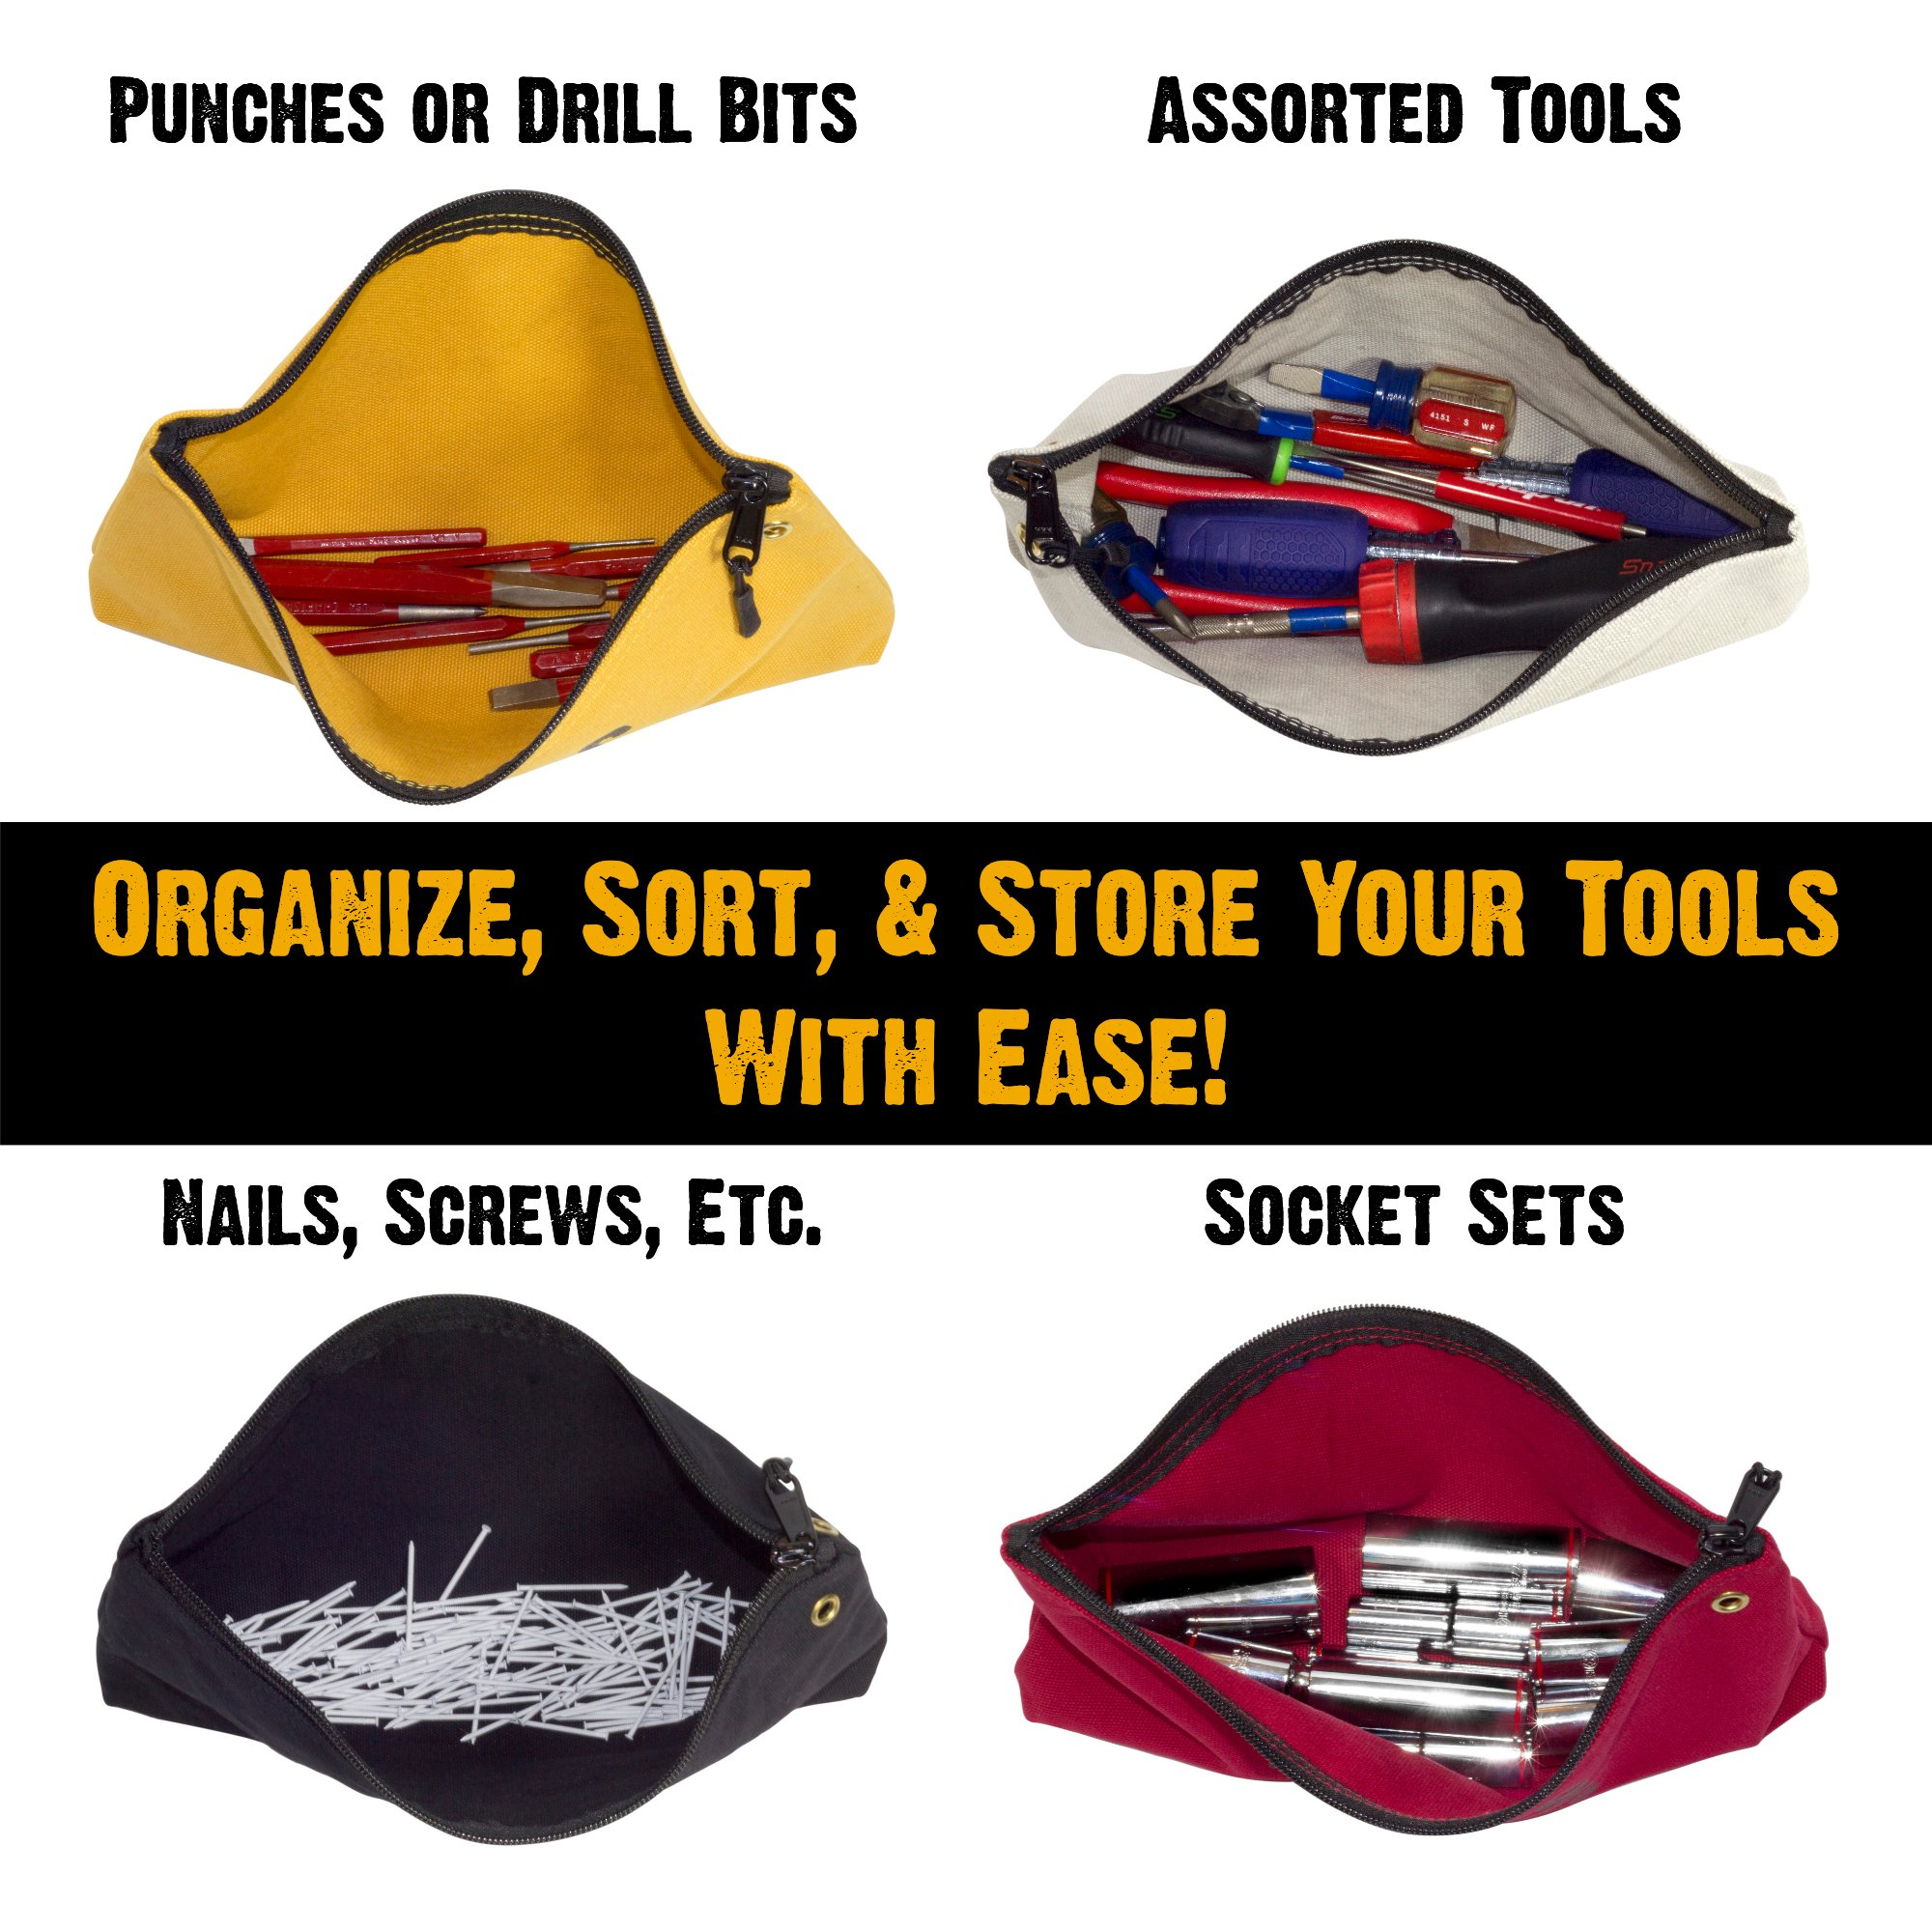 Bad Ass Work Gear   4-Pack of Heavy Duty 20 oz. Canvas Zipper Tool Bags in 4 colors   Toughest Utility Bag by Bad Ass Work Gear (Image #2)